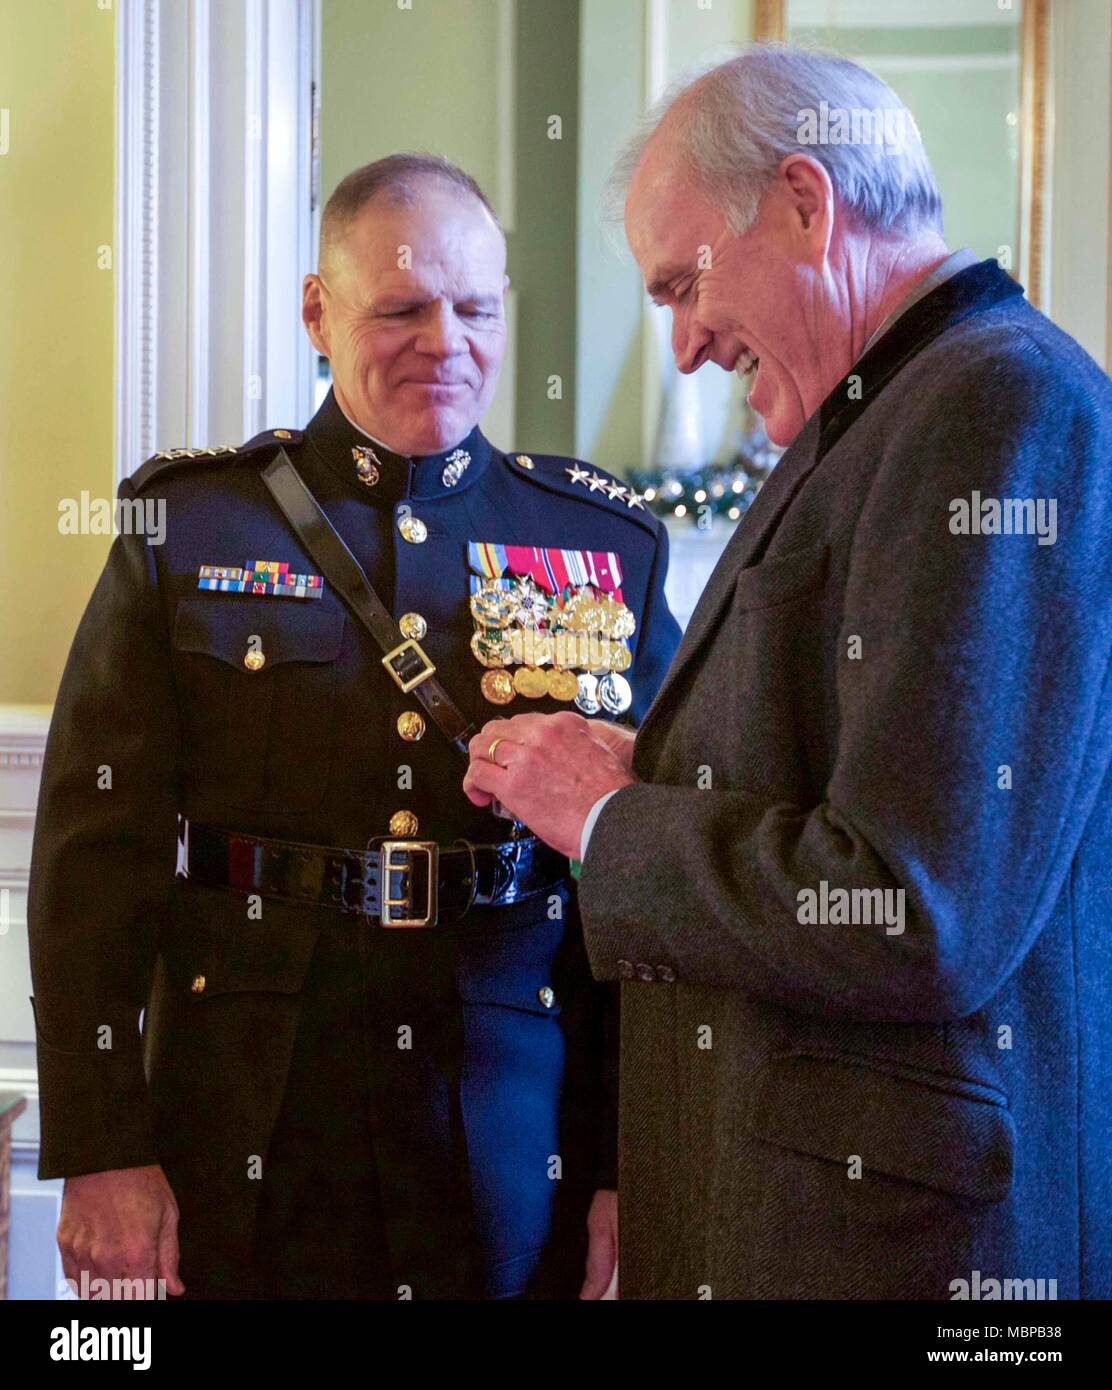 Commandant of the Marine Corps Gen. Robert B. Neller, left, welcomes Secretary of the Navy, Richard V. Spencer before the 2018 Surprise Serenade at the Home of the Commandants, Washington, D.C., Jan. 1, 2018. The Surprise Serenade is a tradition that dates back to the mid-1800's in which the U.S. Marine Band performs music for the Commandant of the Marine Corps at his home on New Years Day. (U.S. Marine Corps photo by Sgt. Olivia G. Ortiz) Stock Photo